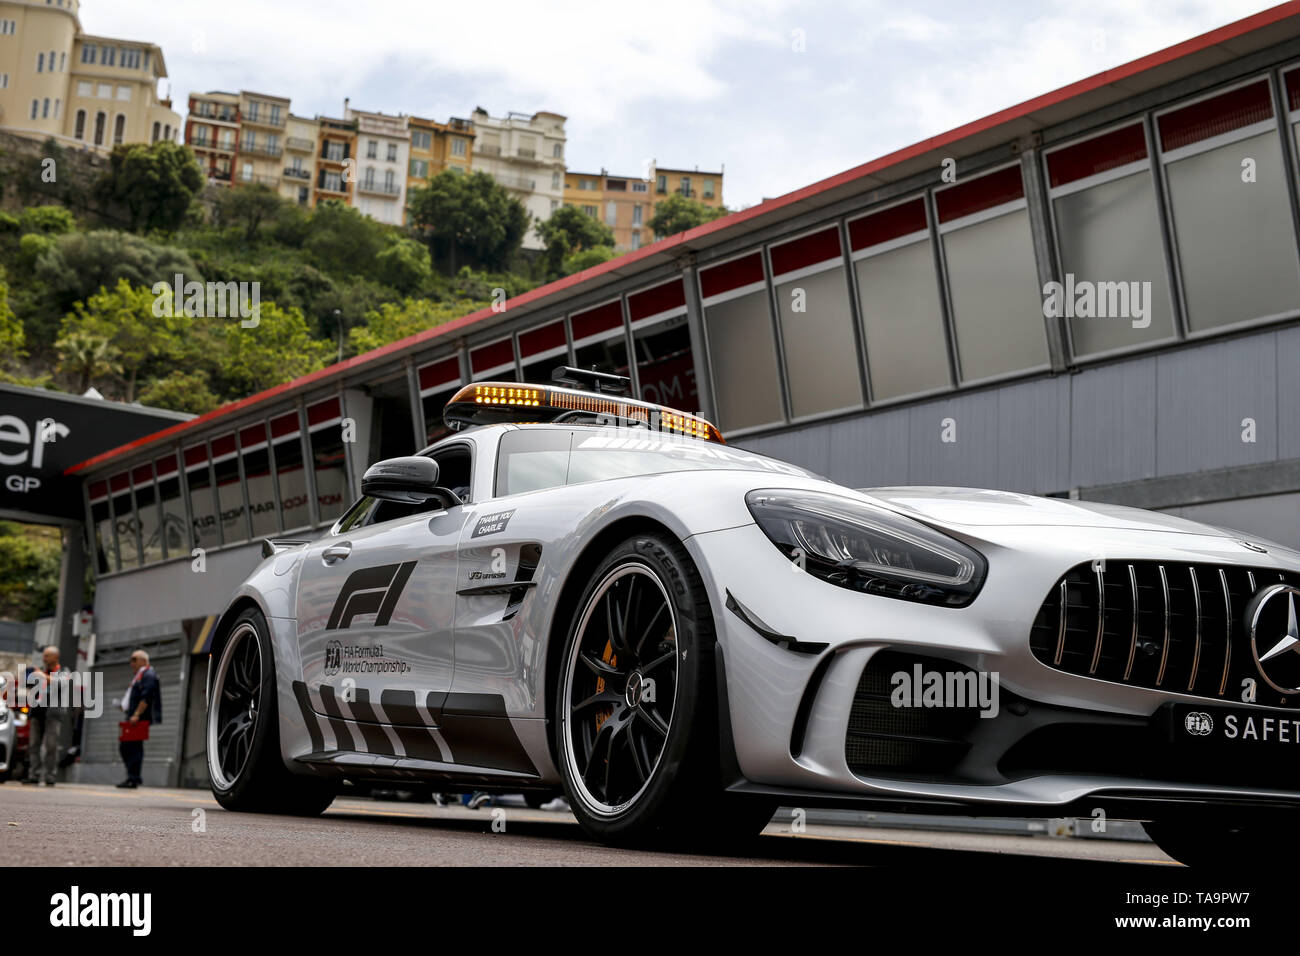 F1 Safety Car Stock Photos & F1 Safety Car Stock Images - Alamy